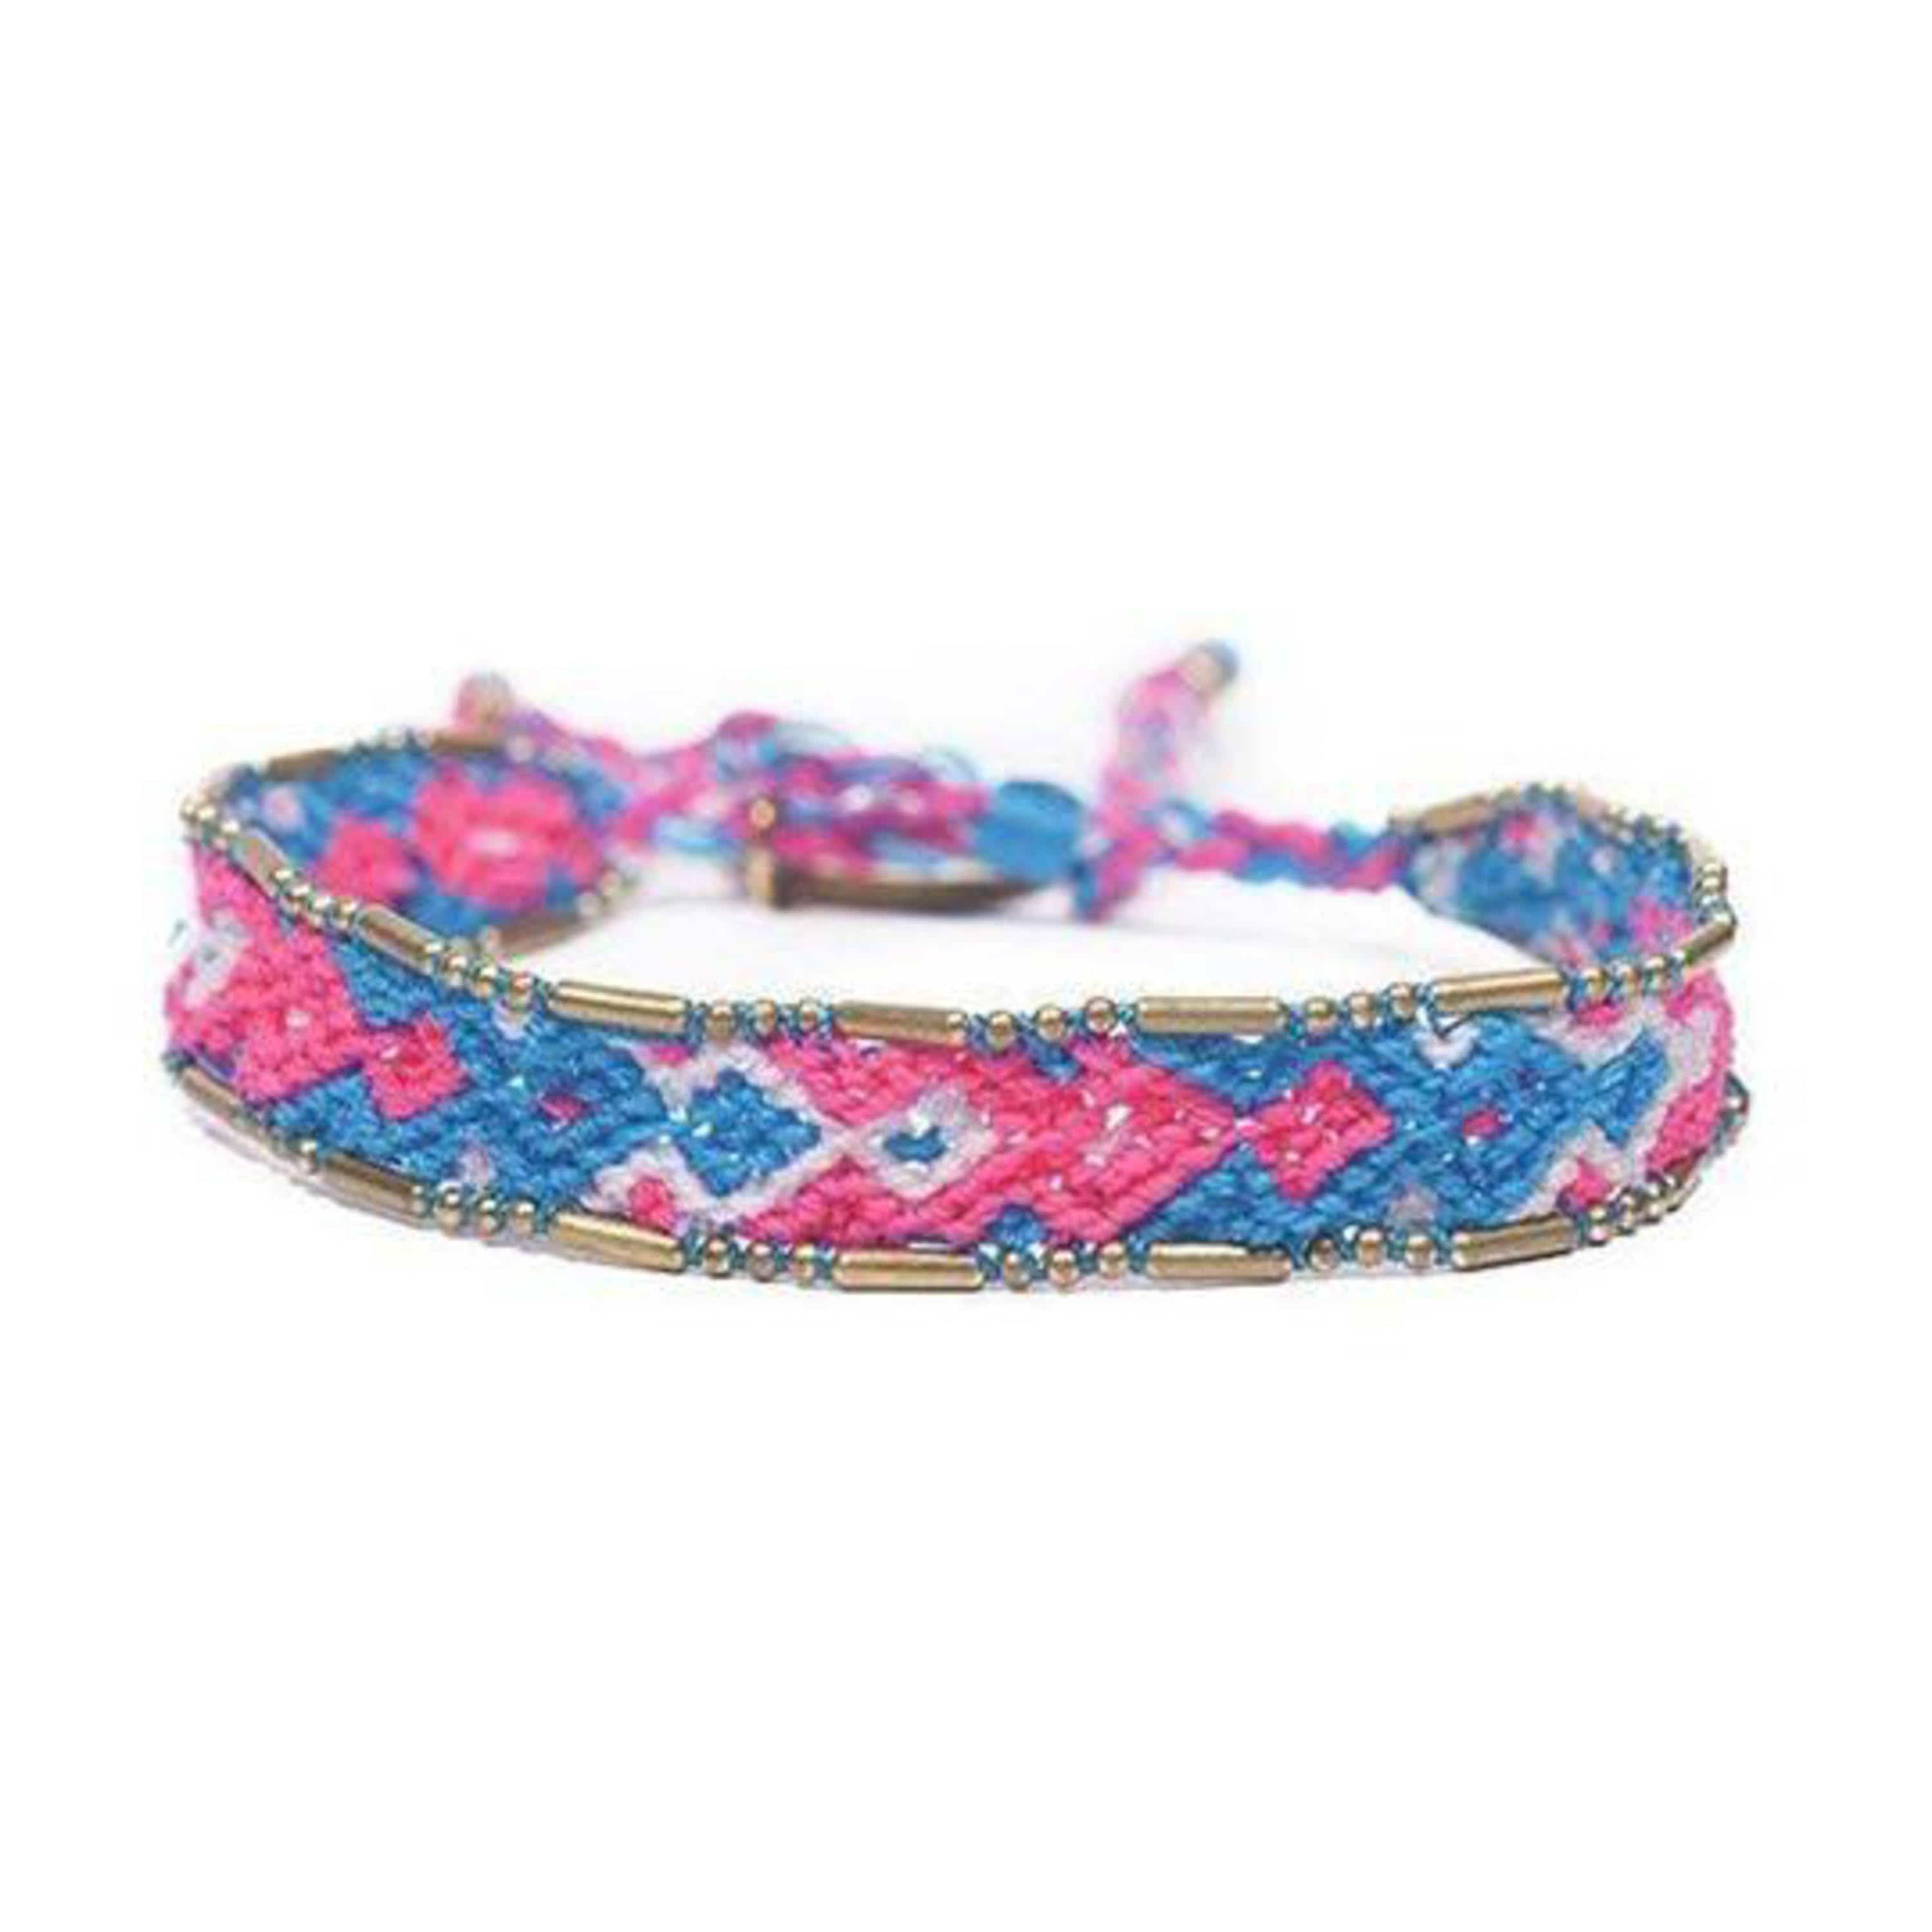 Bali Friendship Bracelet - Electric Love - Love Is Project